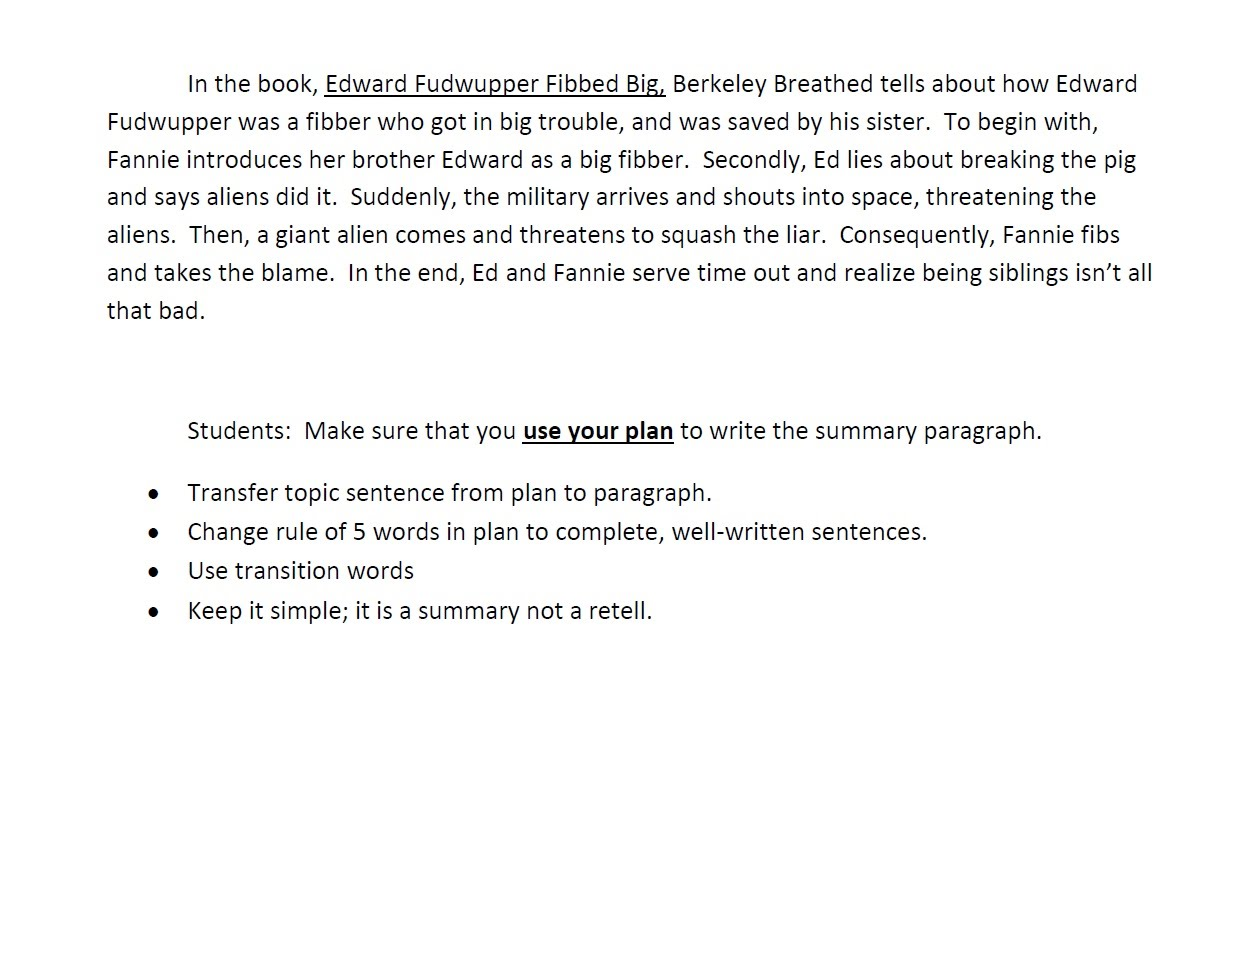 How to writing a summary paragraph sample